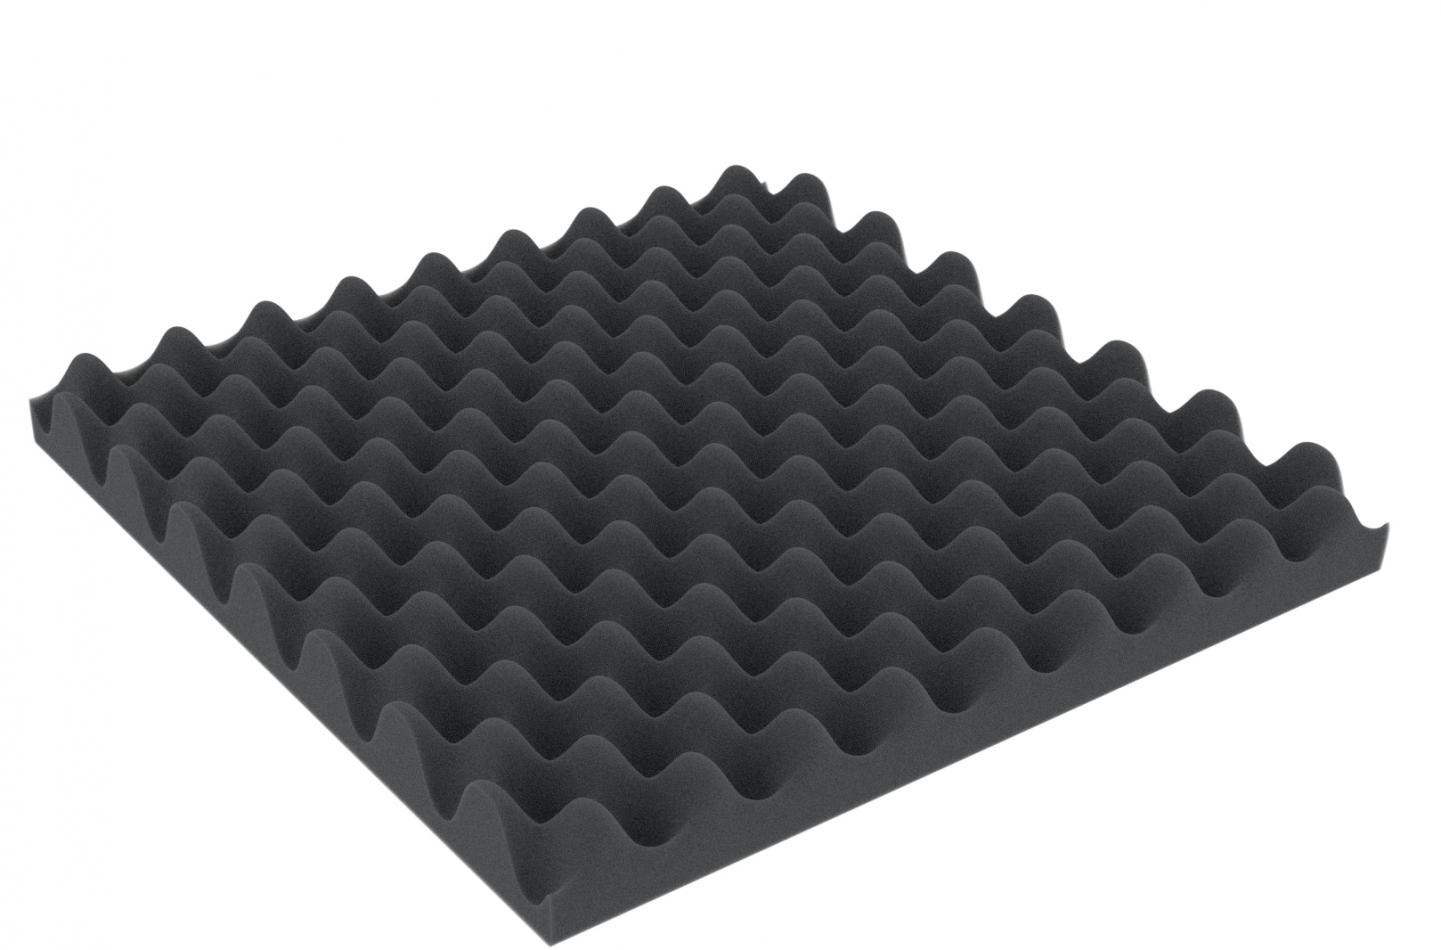 ABNP050 300 mm x 300 mm x 50 mm (2 inches) Convoluted foam